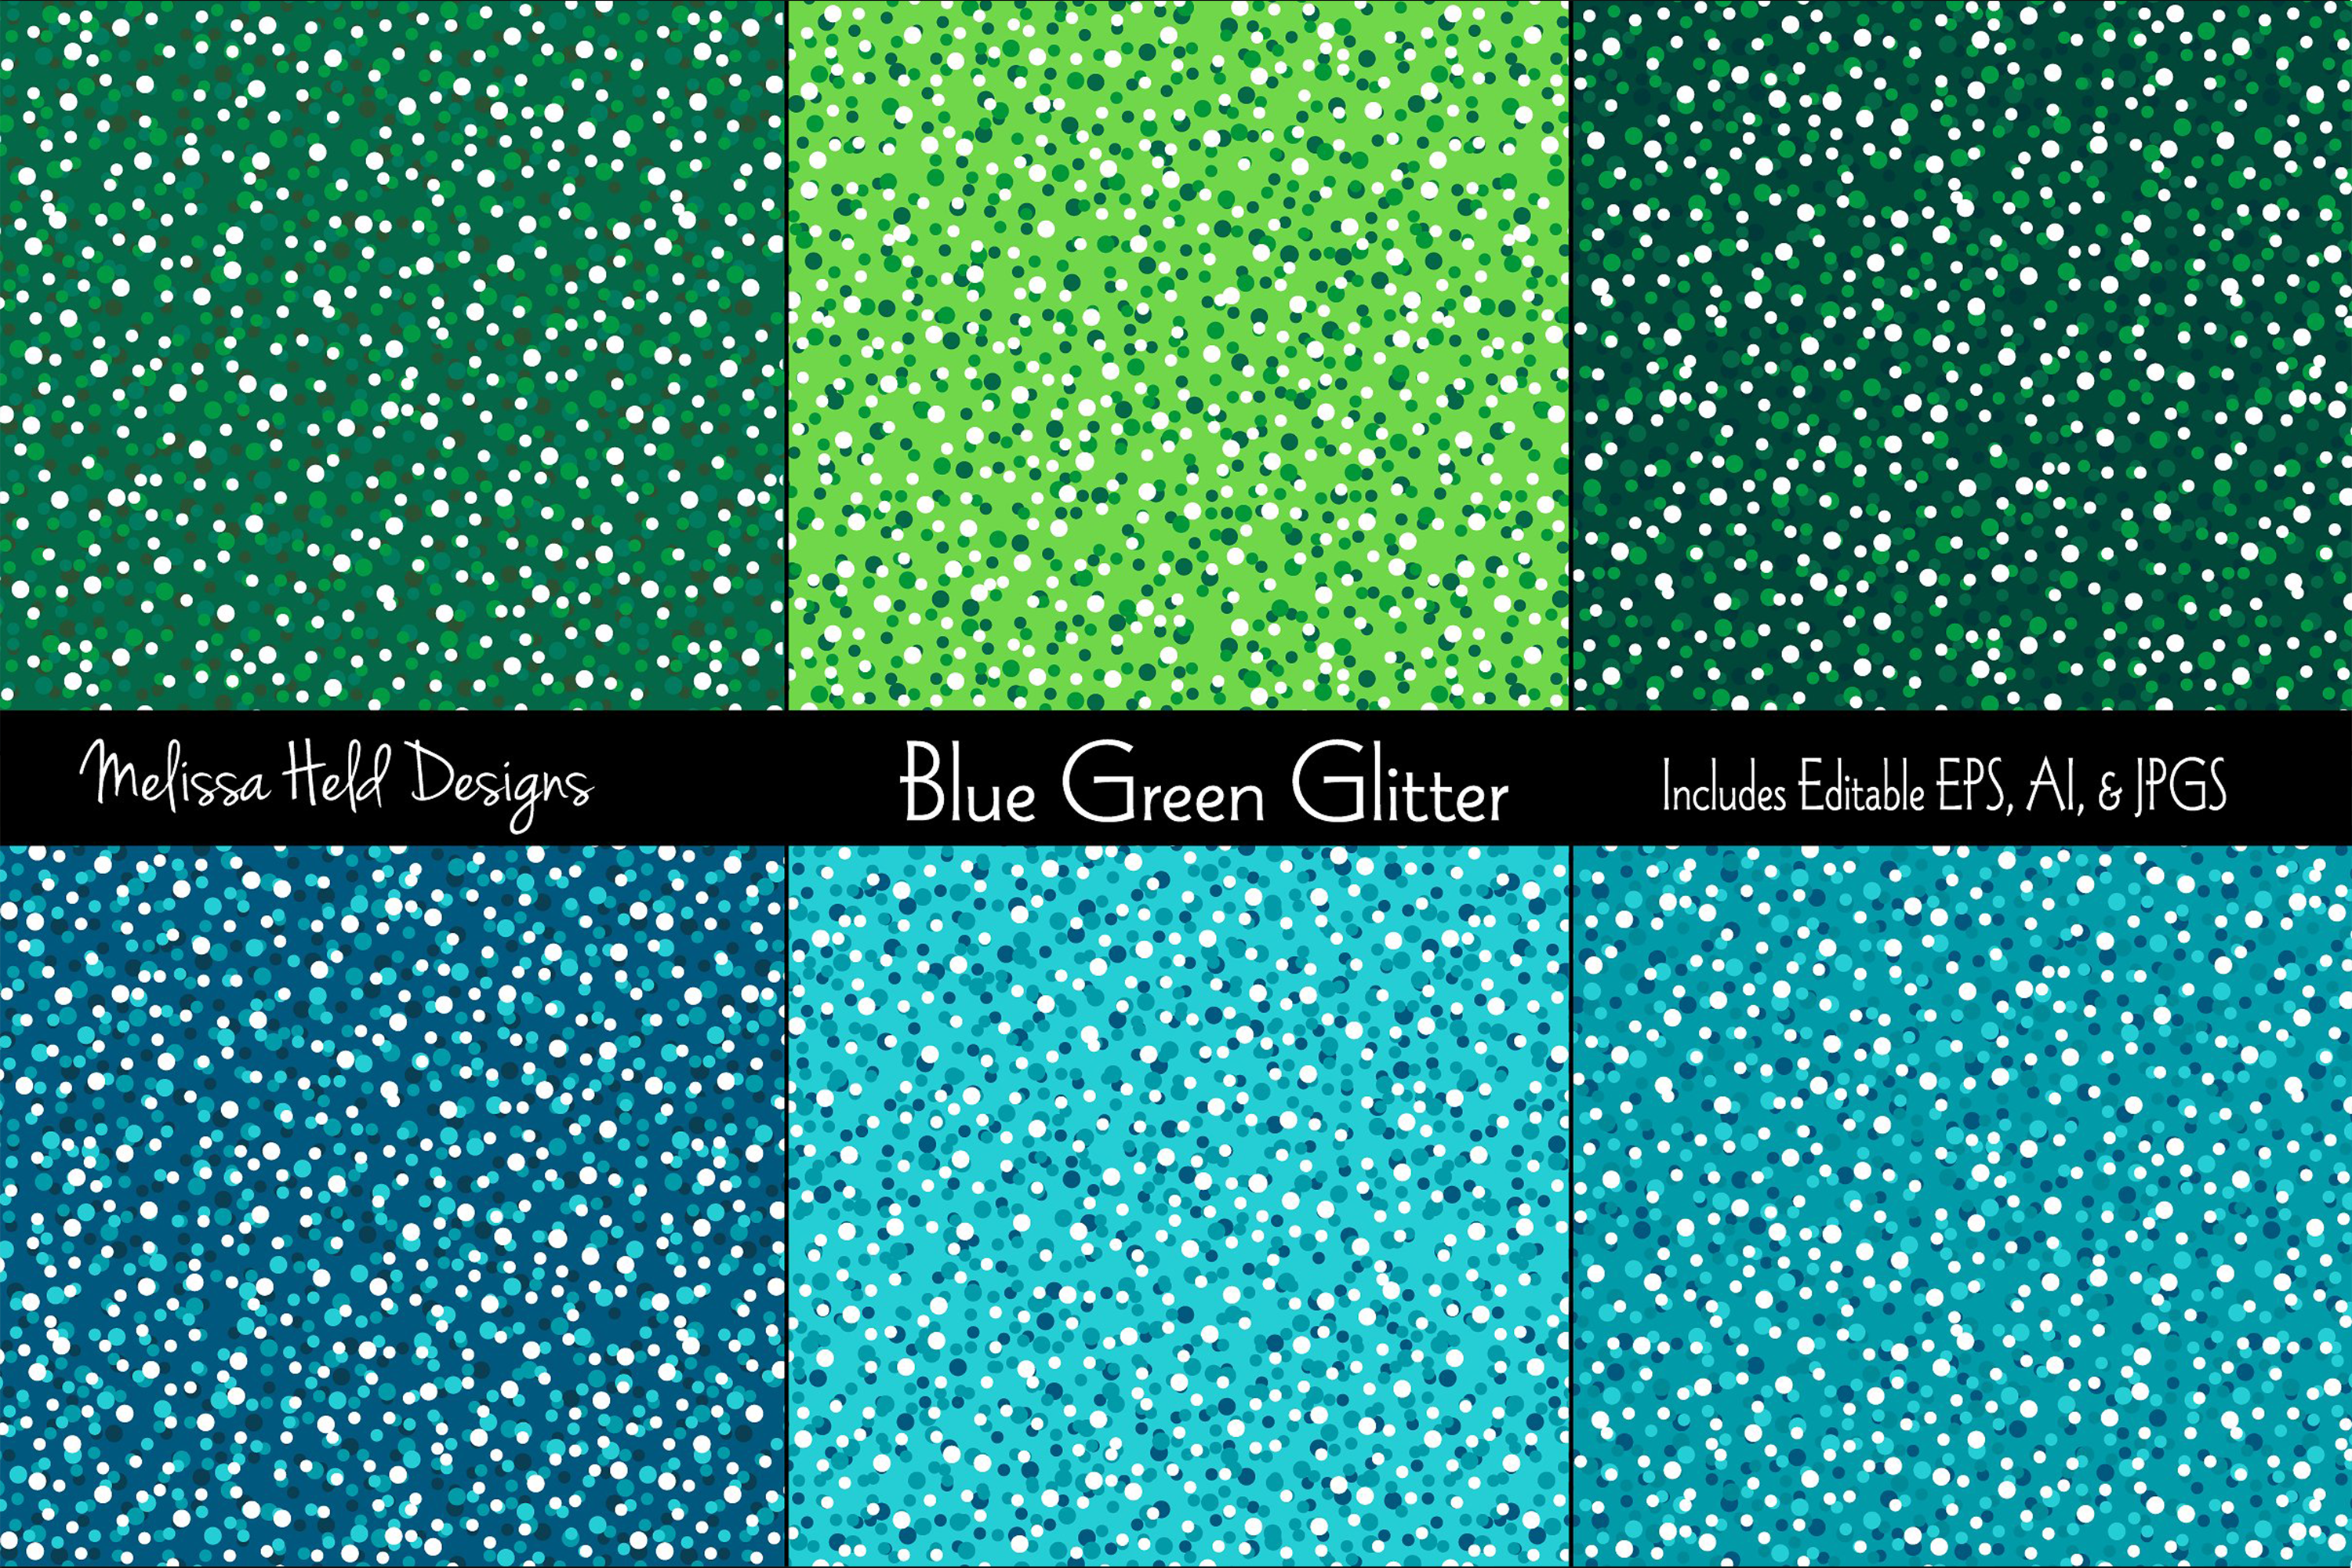 Blue & Green Glitter Textures example image 1